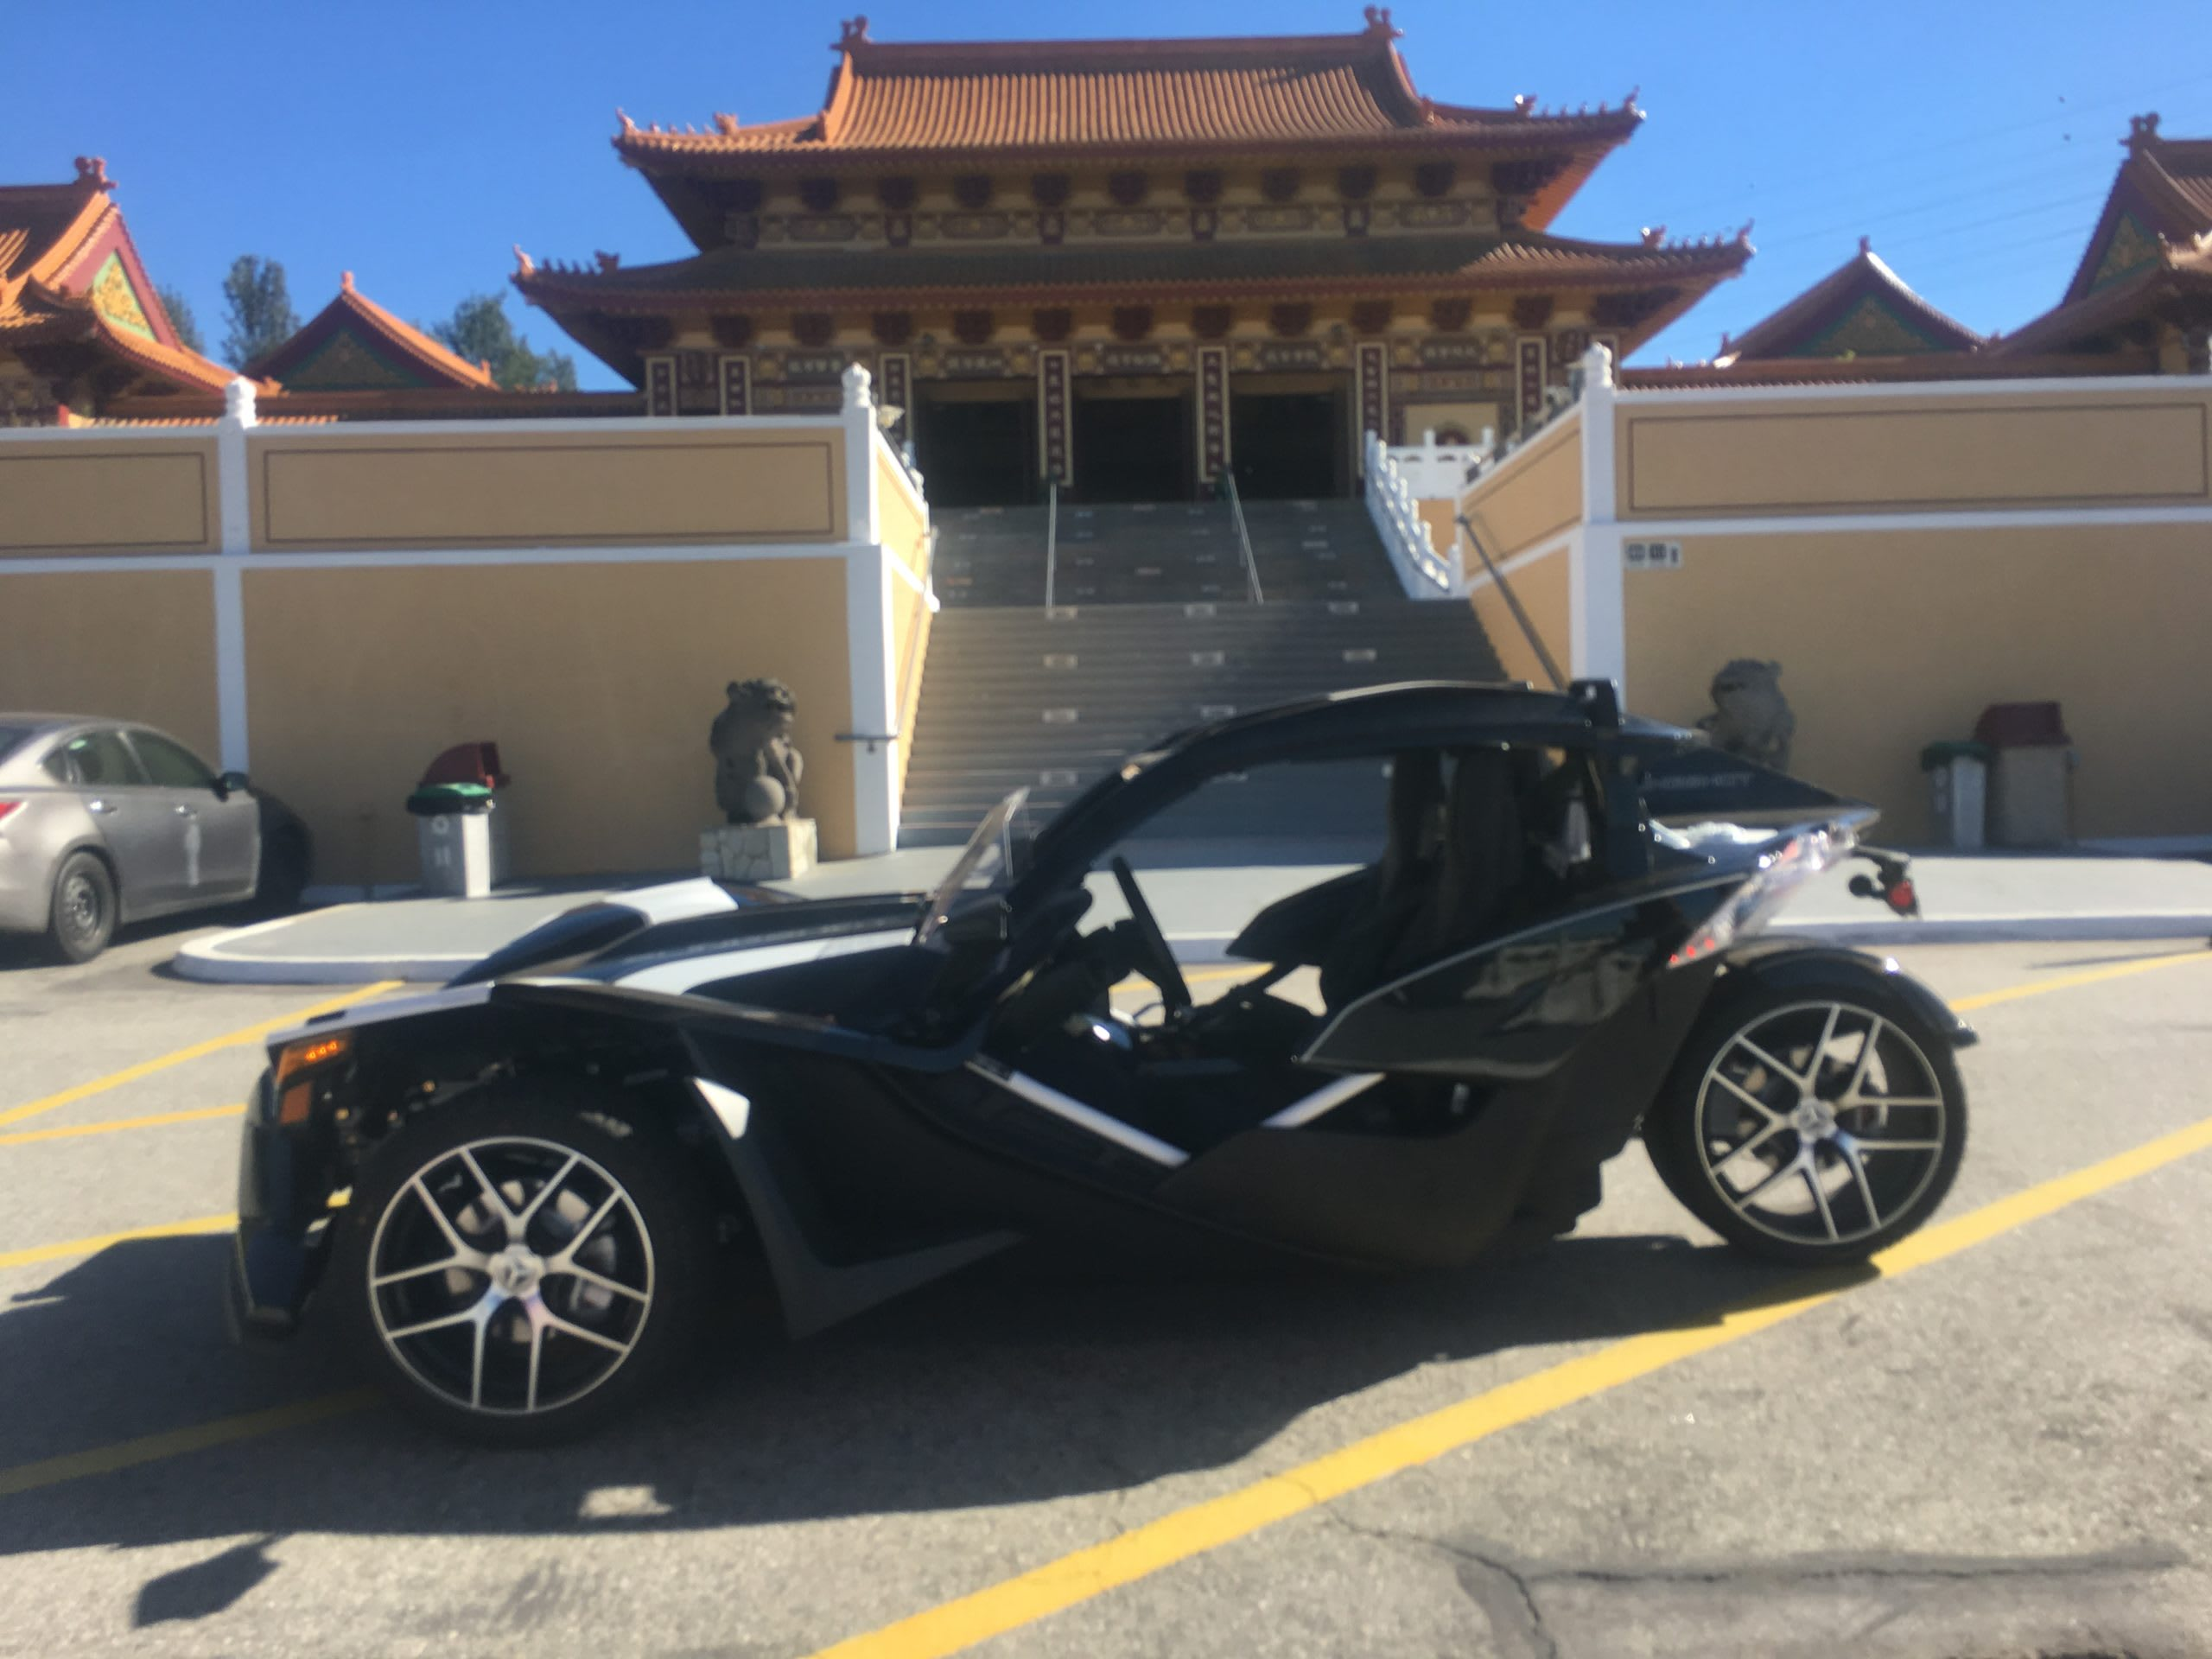 Polaris Slingshot Grand Touring in front of the Great Wall of China.. in Los Angeles